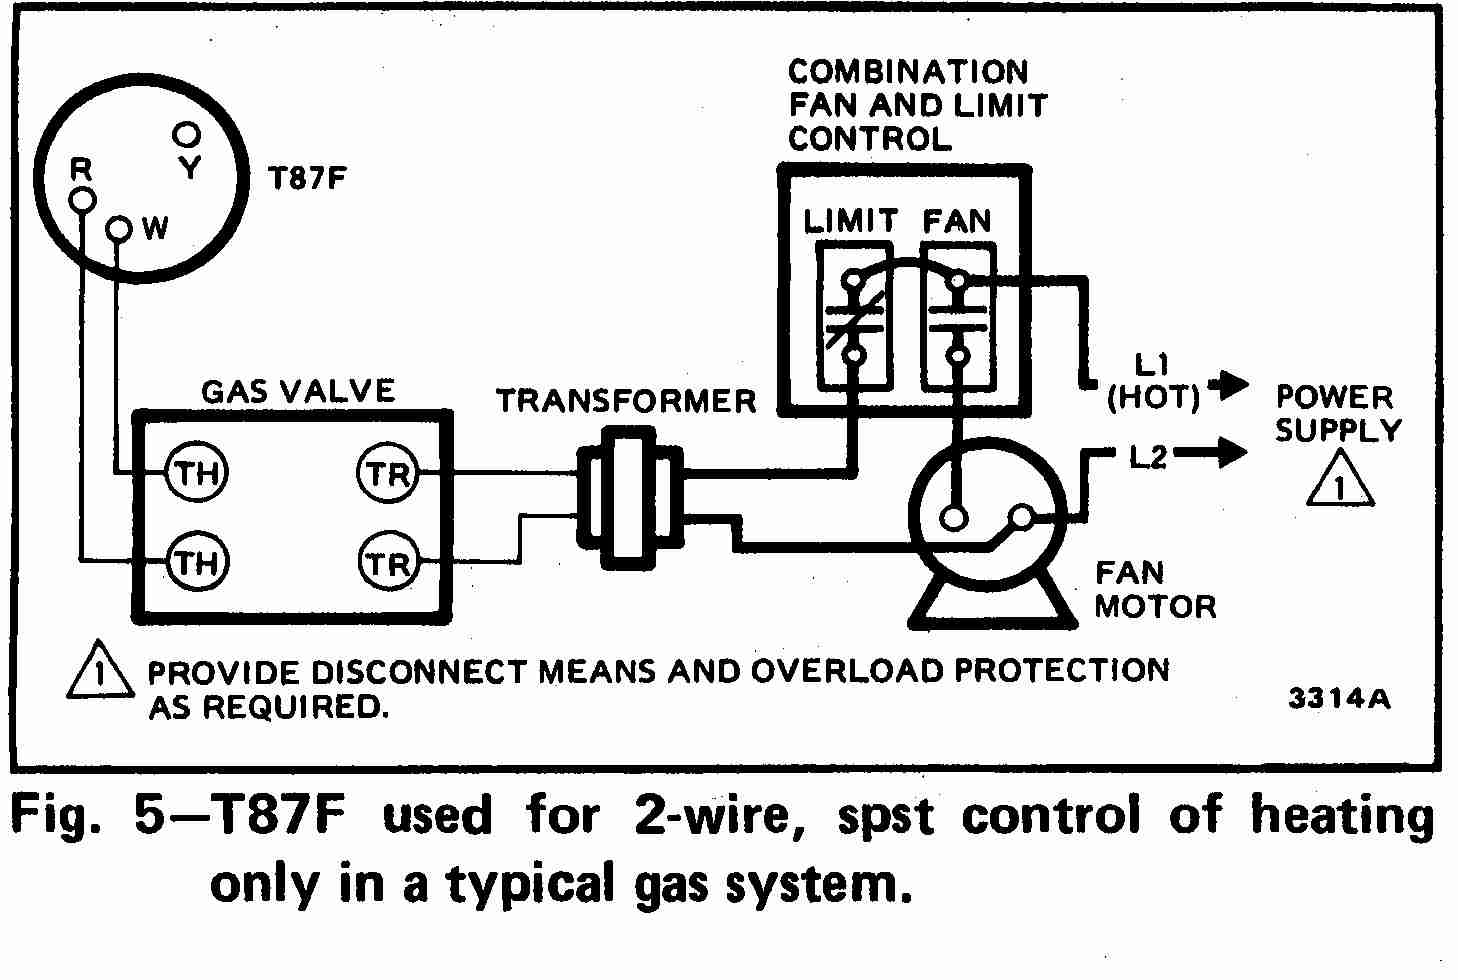 TT_T87F_0002_2Wg_DJF space heater wiring diagram s700 electric heater wire diagram modine pa105a wiring diagram at bayanpartner.co